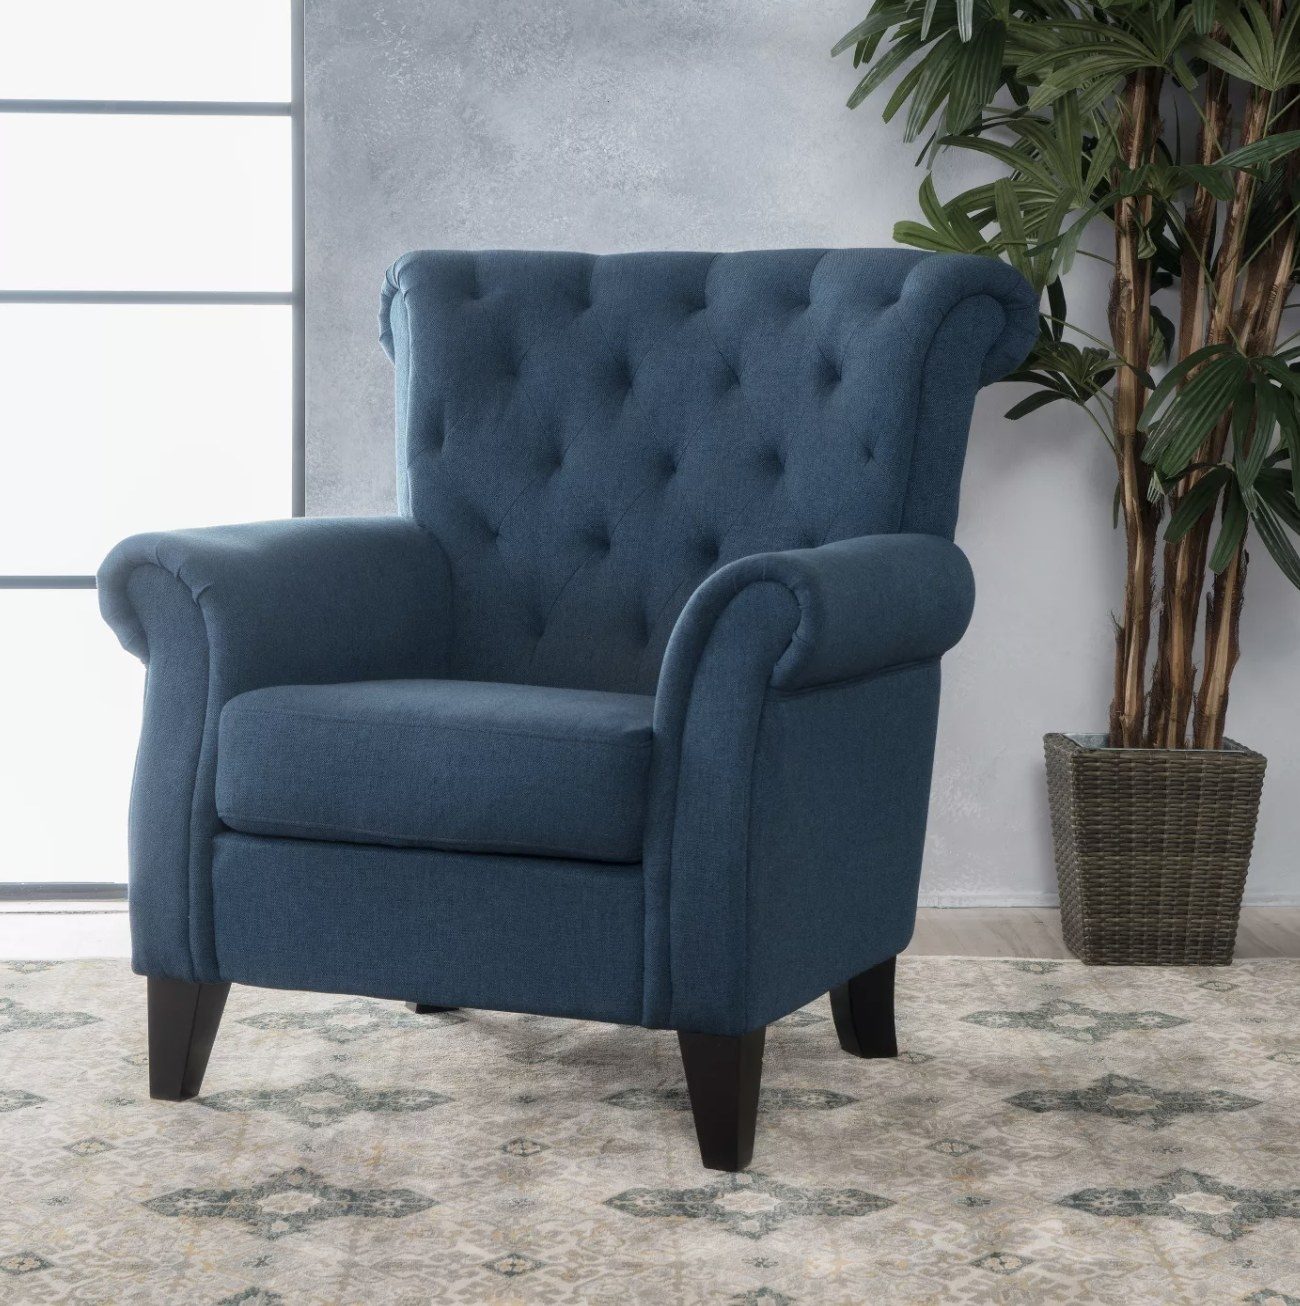 A navy blue chair